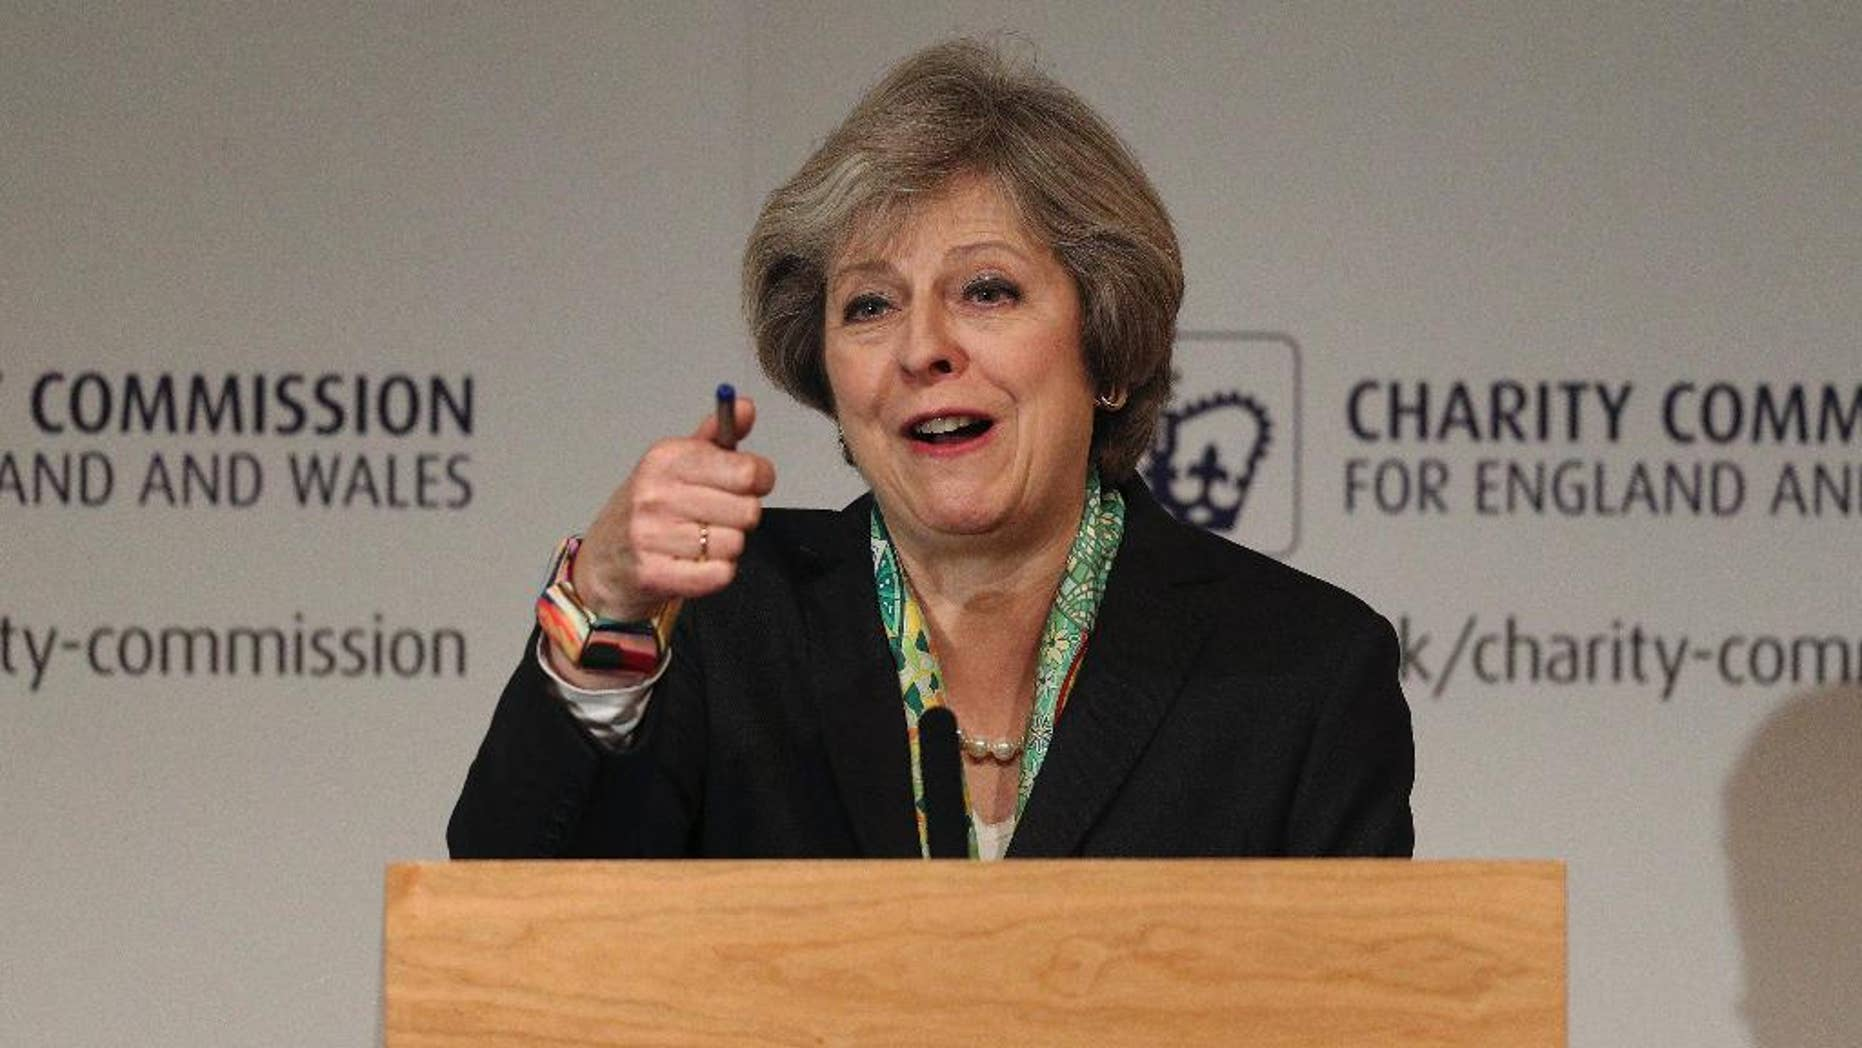 Britain's Prime Minister Theresa May speaks to members of the Charity Commission for England and Wales at The Royal Society in London, where she detailed plans to provide greater support for those suffering mental health problems, Monday Jan. 9, 2017. (Dan Kitwood/Pool via AP)